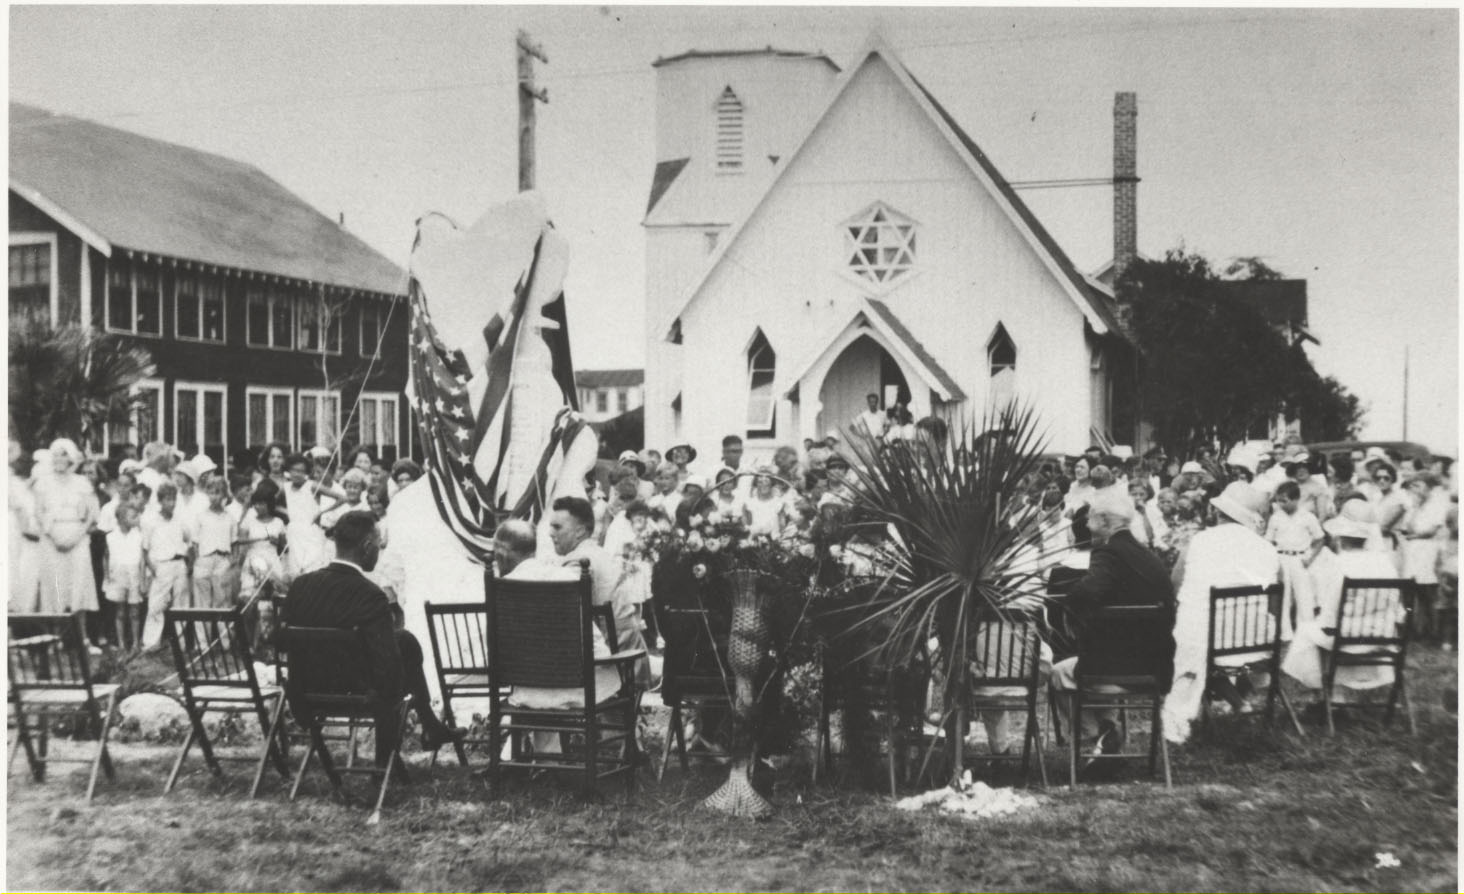 Original location. 1932 Dedication of Lindbergh Memorial to Children. Church was then located at the corner of 2nd Street and 2nd Avenue, South, in Jacksonville Beach.